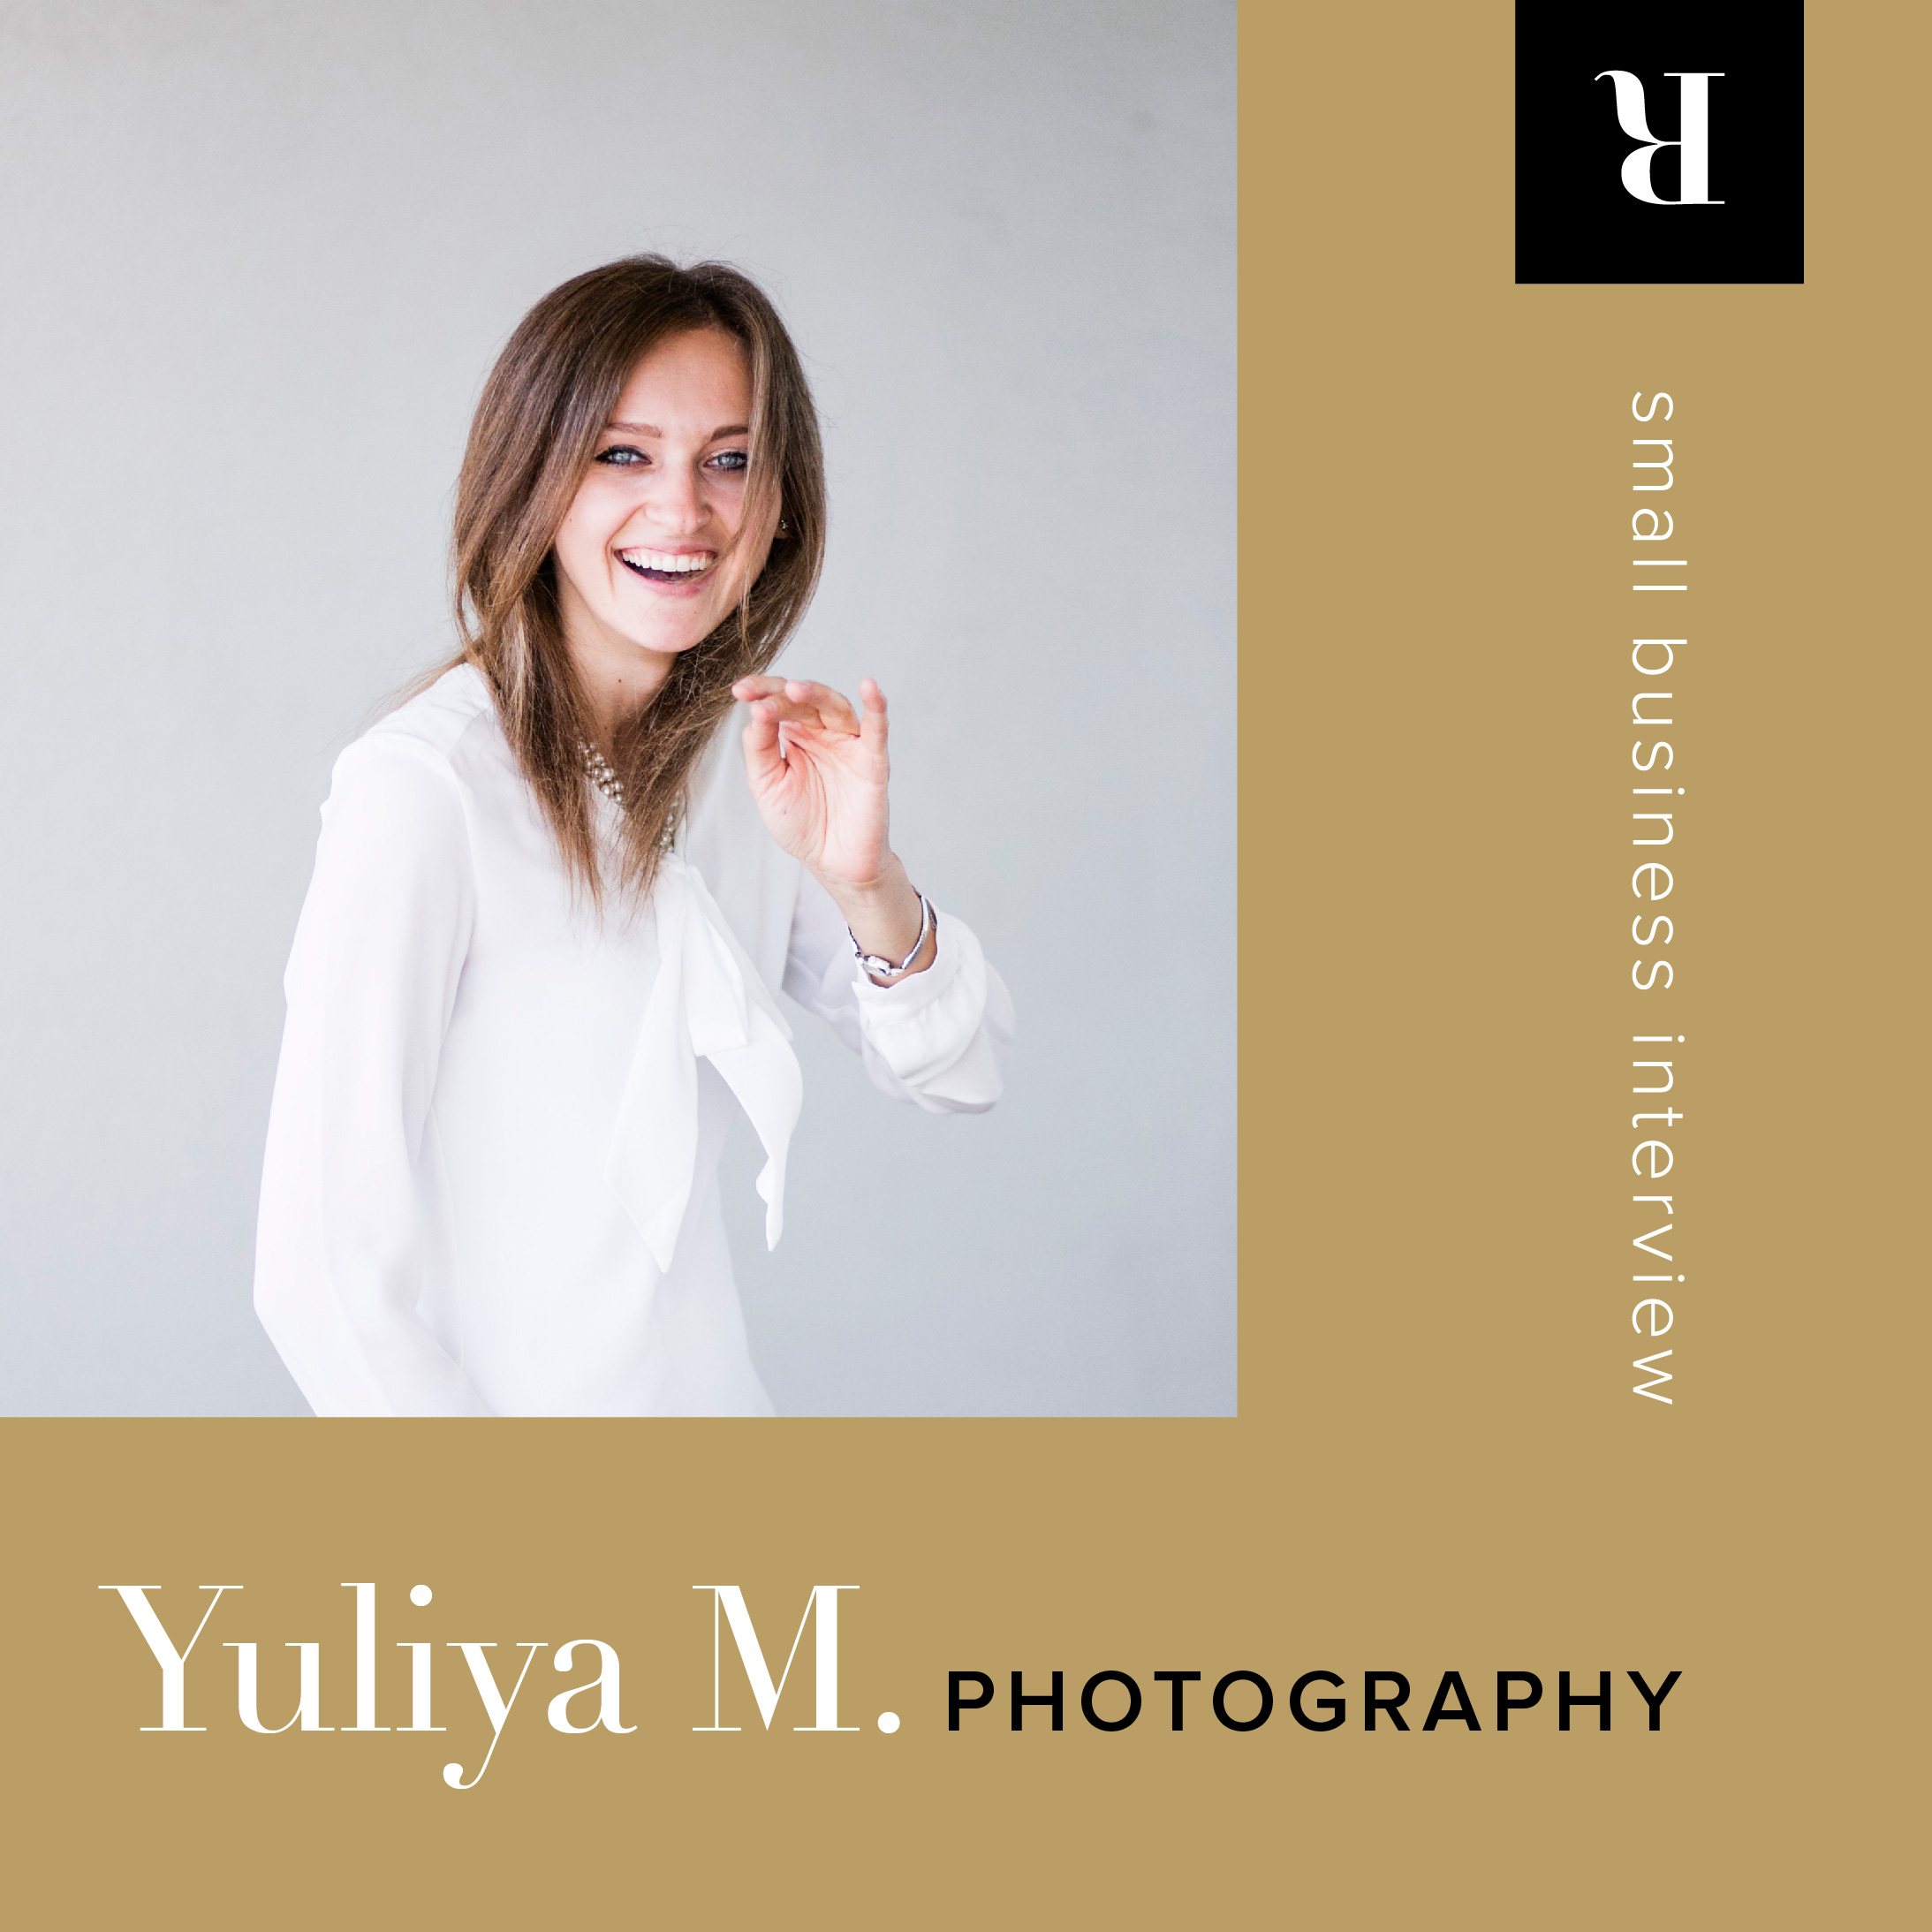 Yuliya M. Photography | Letterform Creative